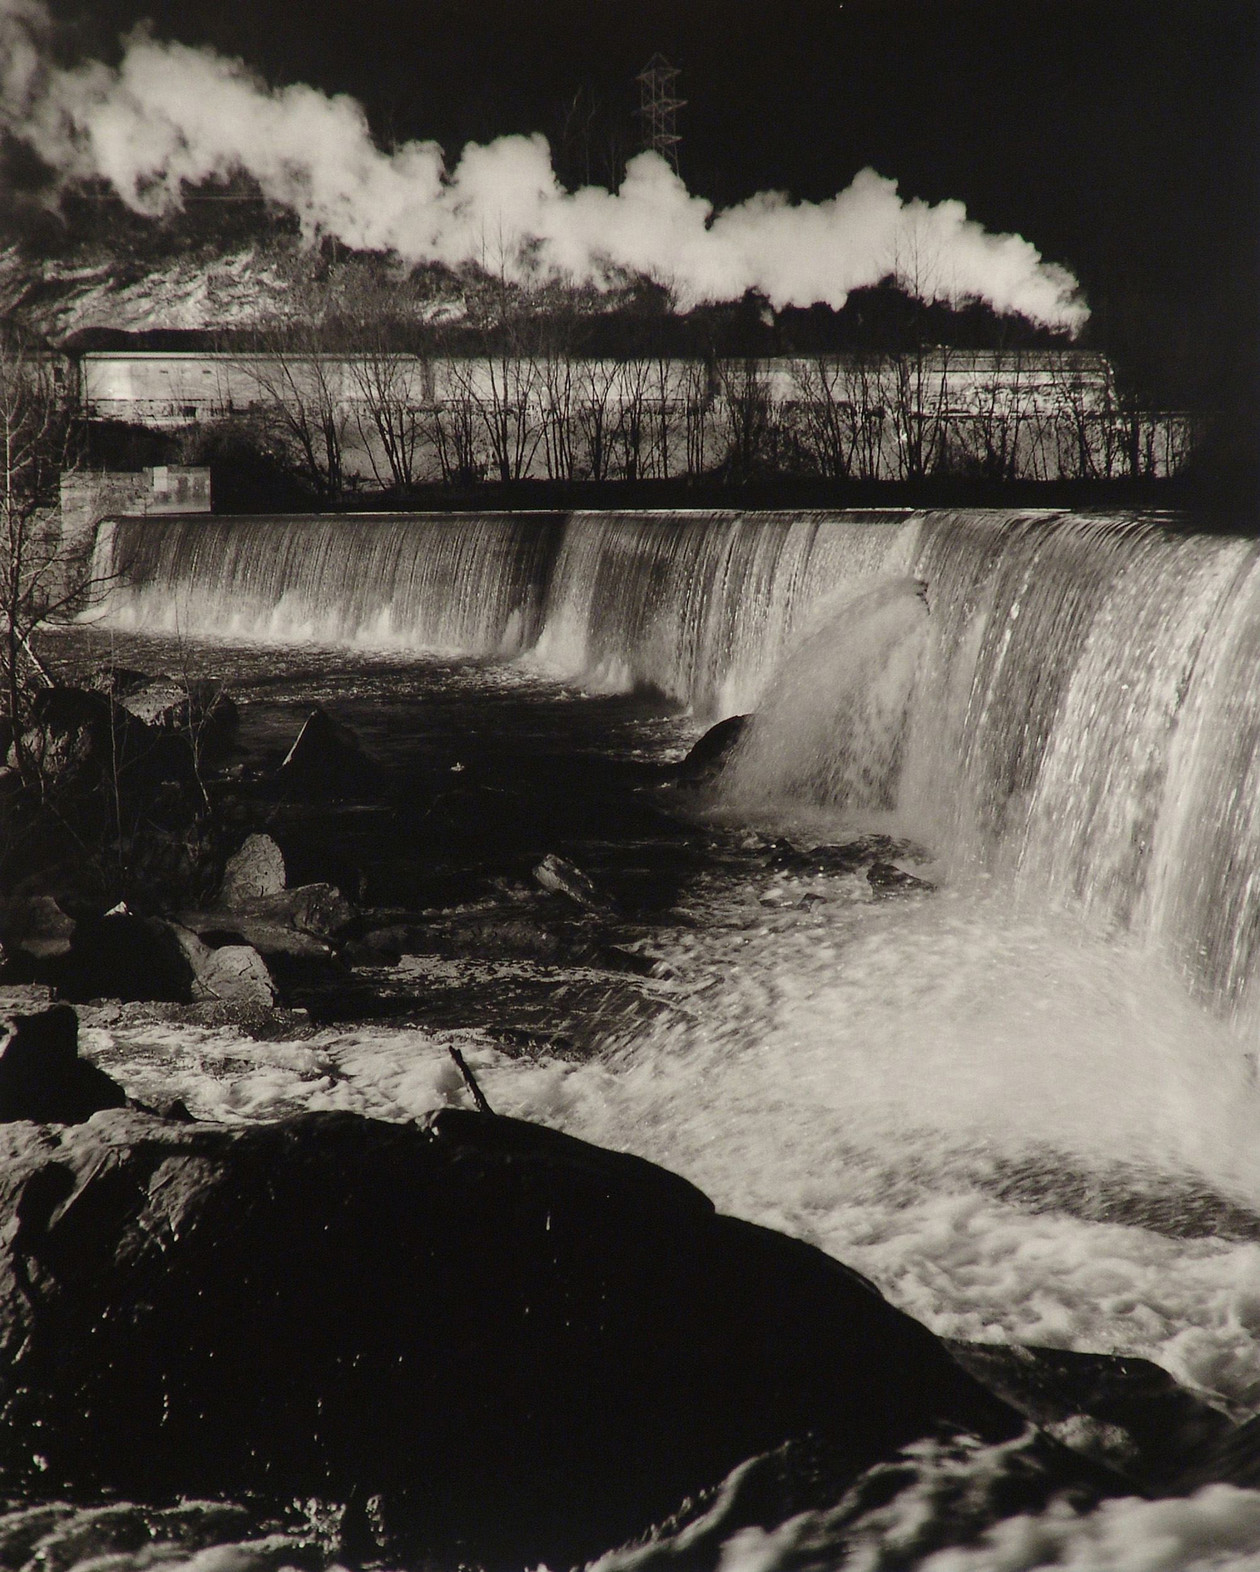 Gooseneck Dam of the Maury River (1956) by O. Winston Link